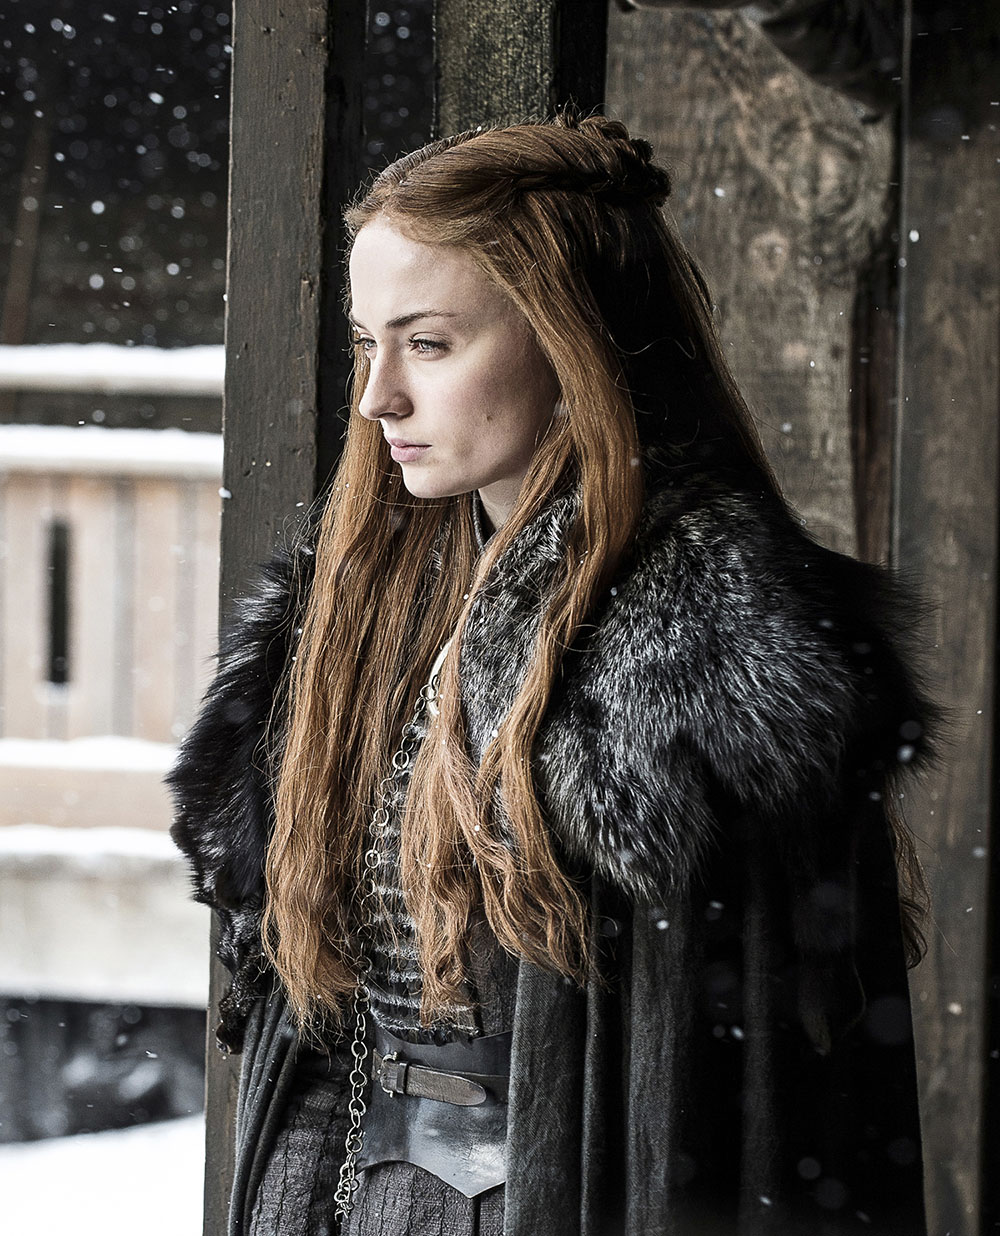 Sophie Turner releva que elenco chorou muito com leitura do final de Game of Thrones